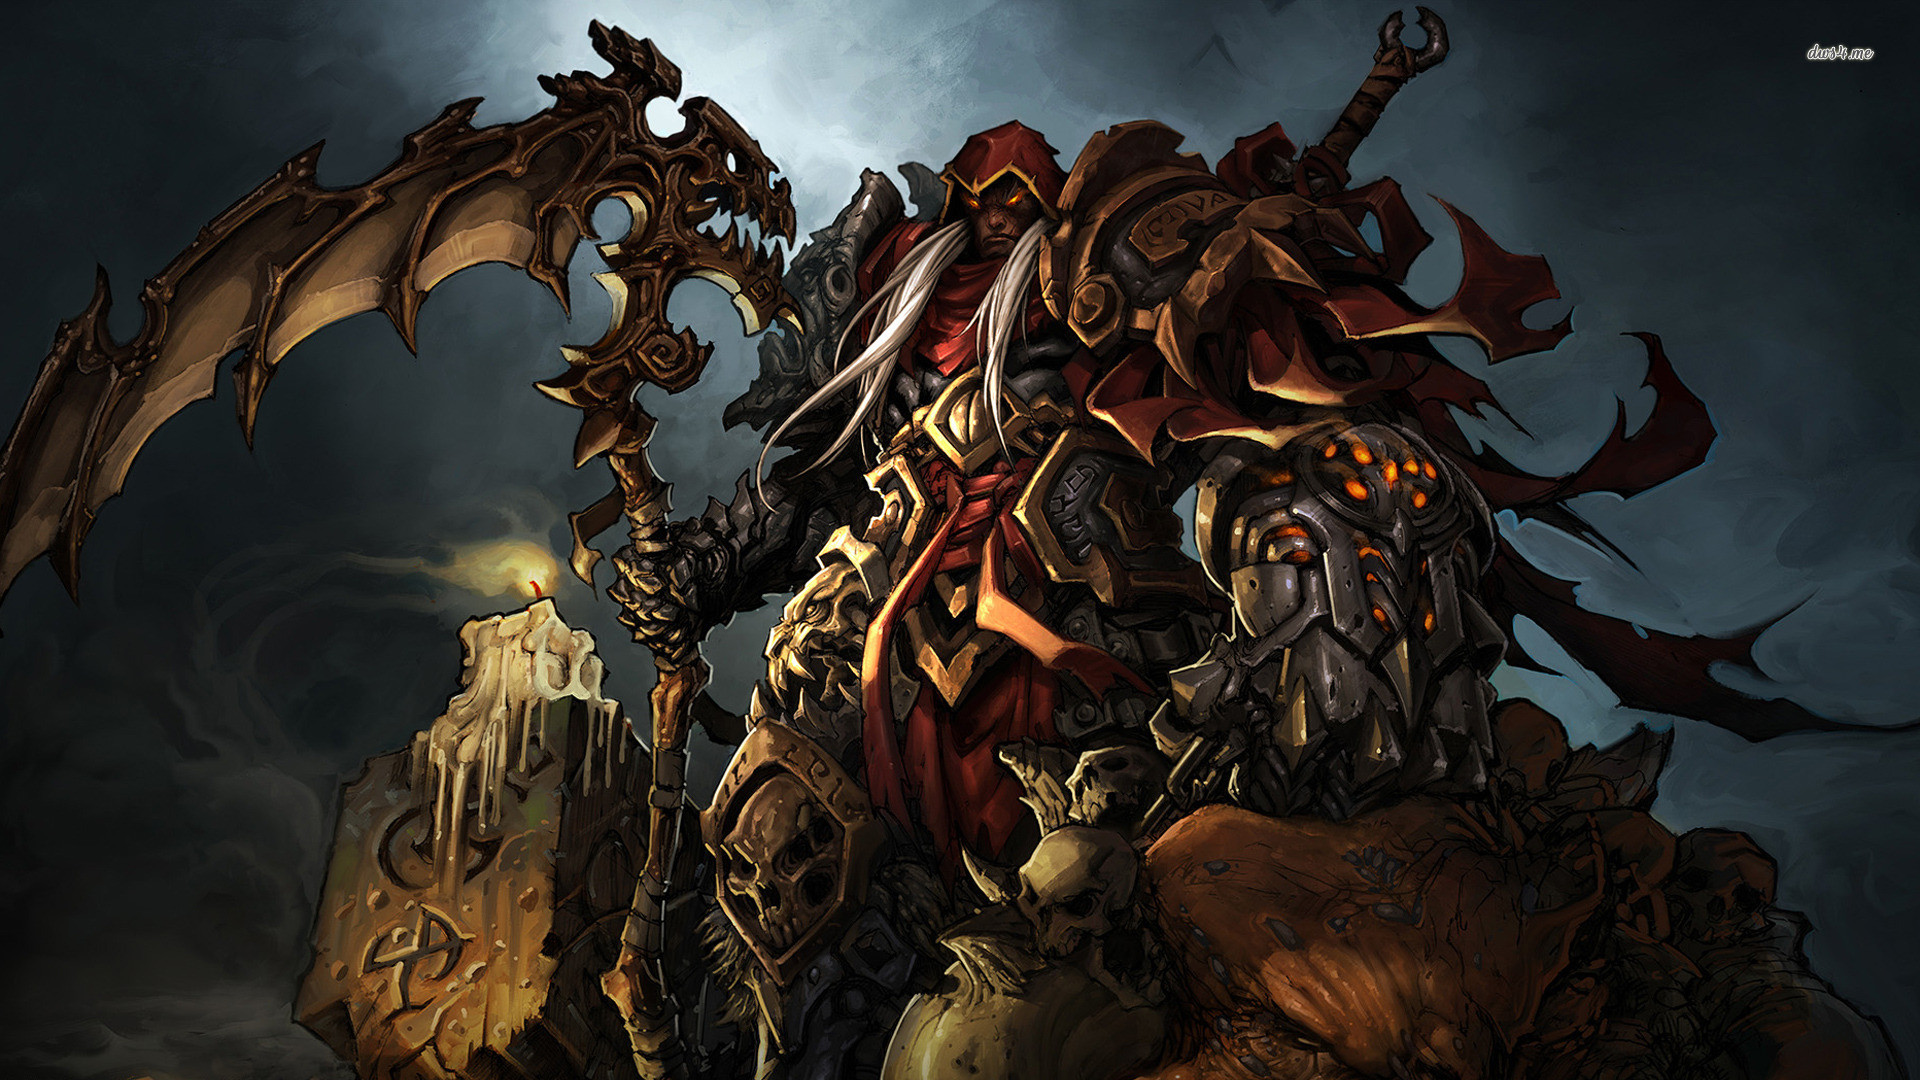 Darksiders Wallpaper Hd 78 Images